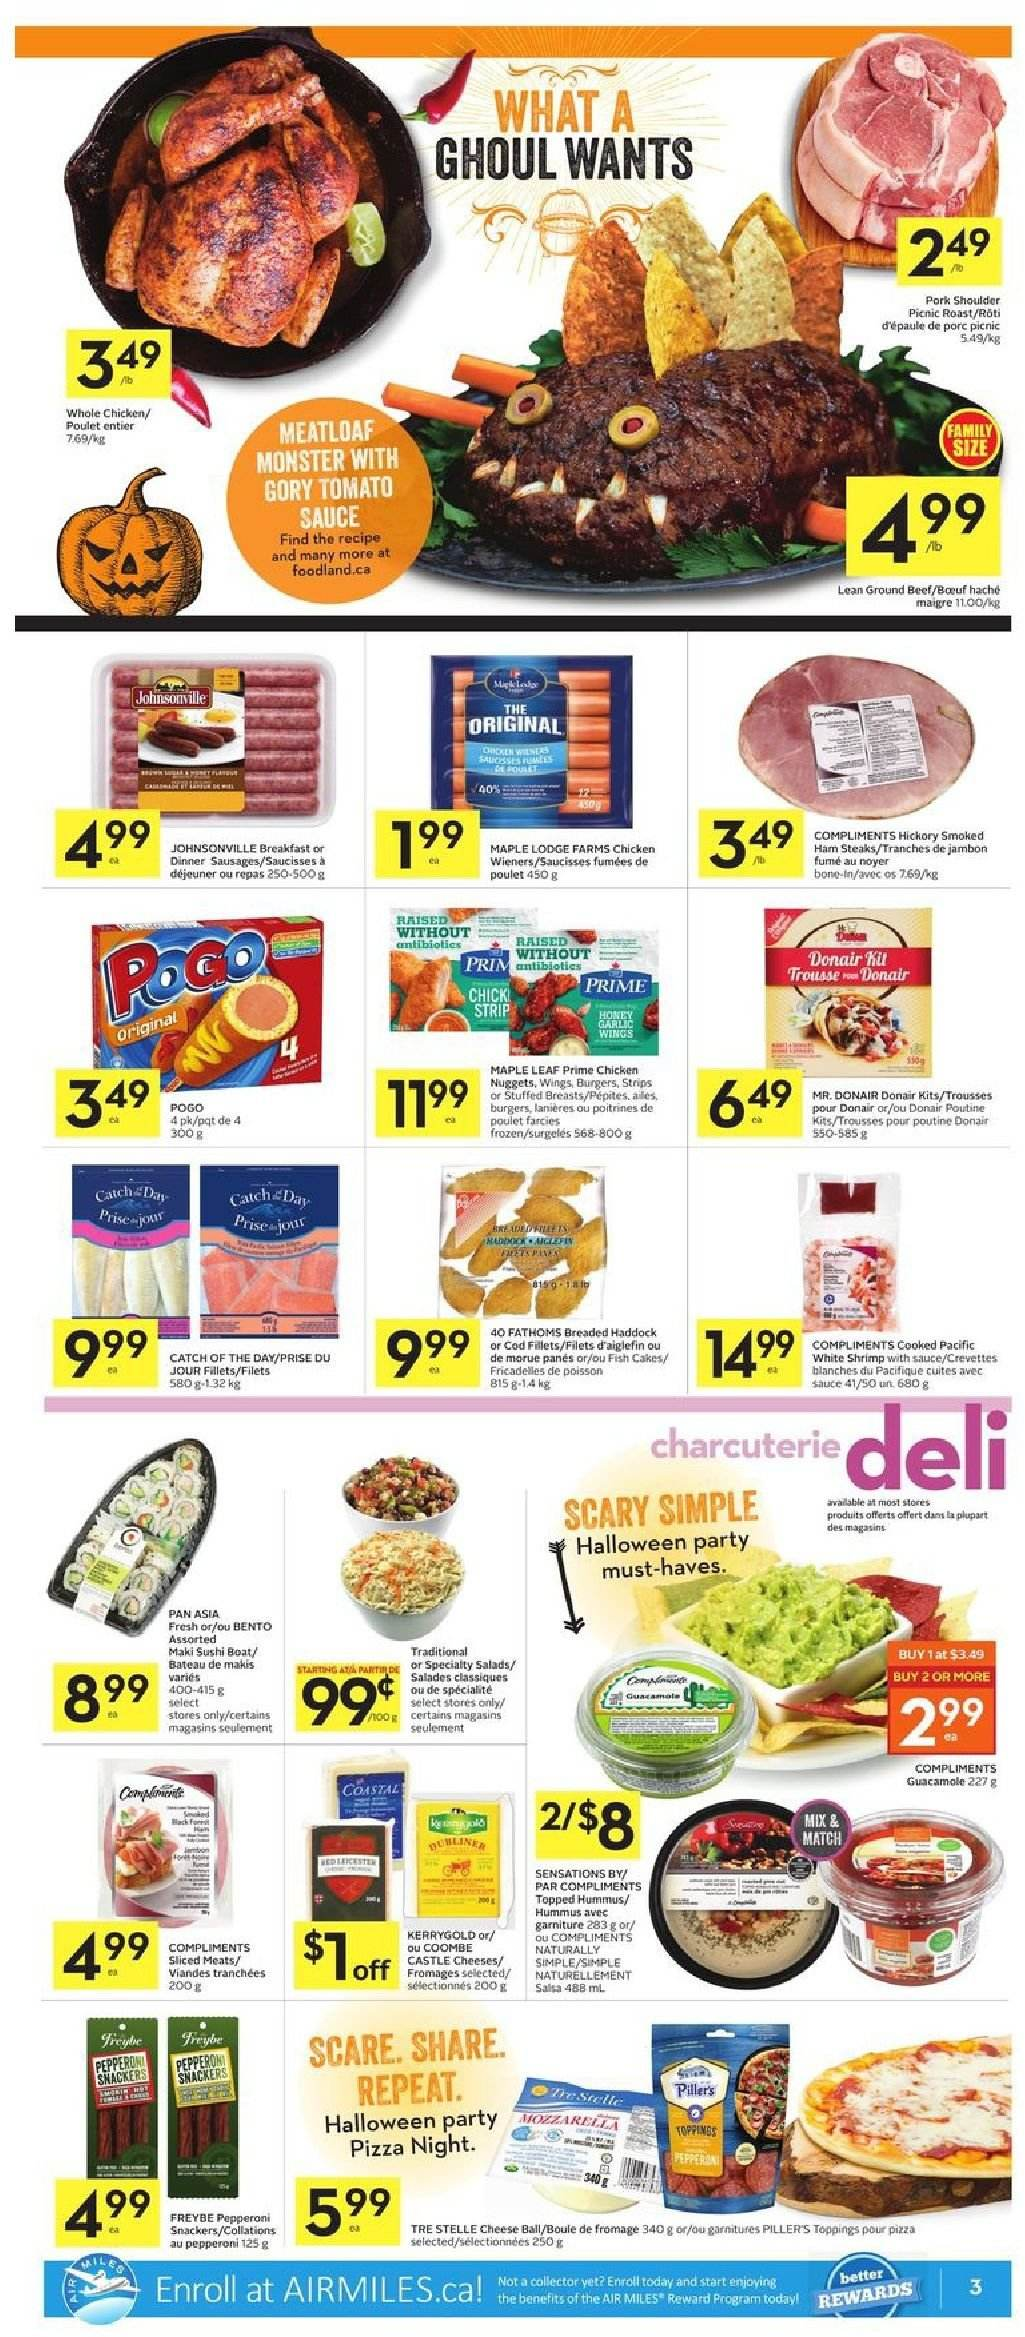 Foodland Flyer  - October 25, 2018 - October 31, 2018. Page 3.